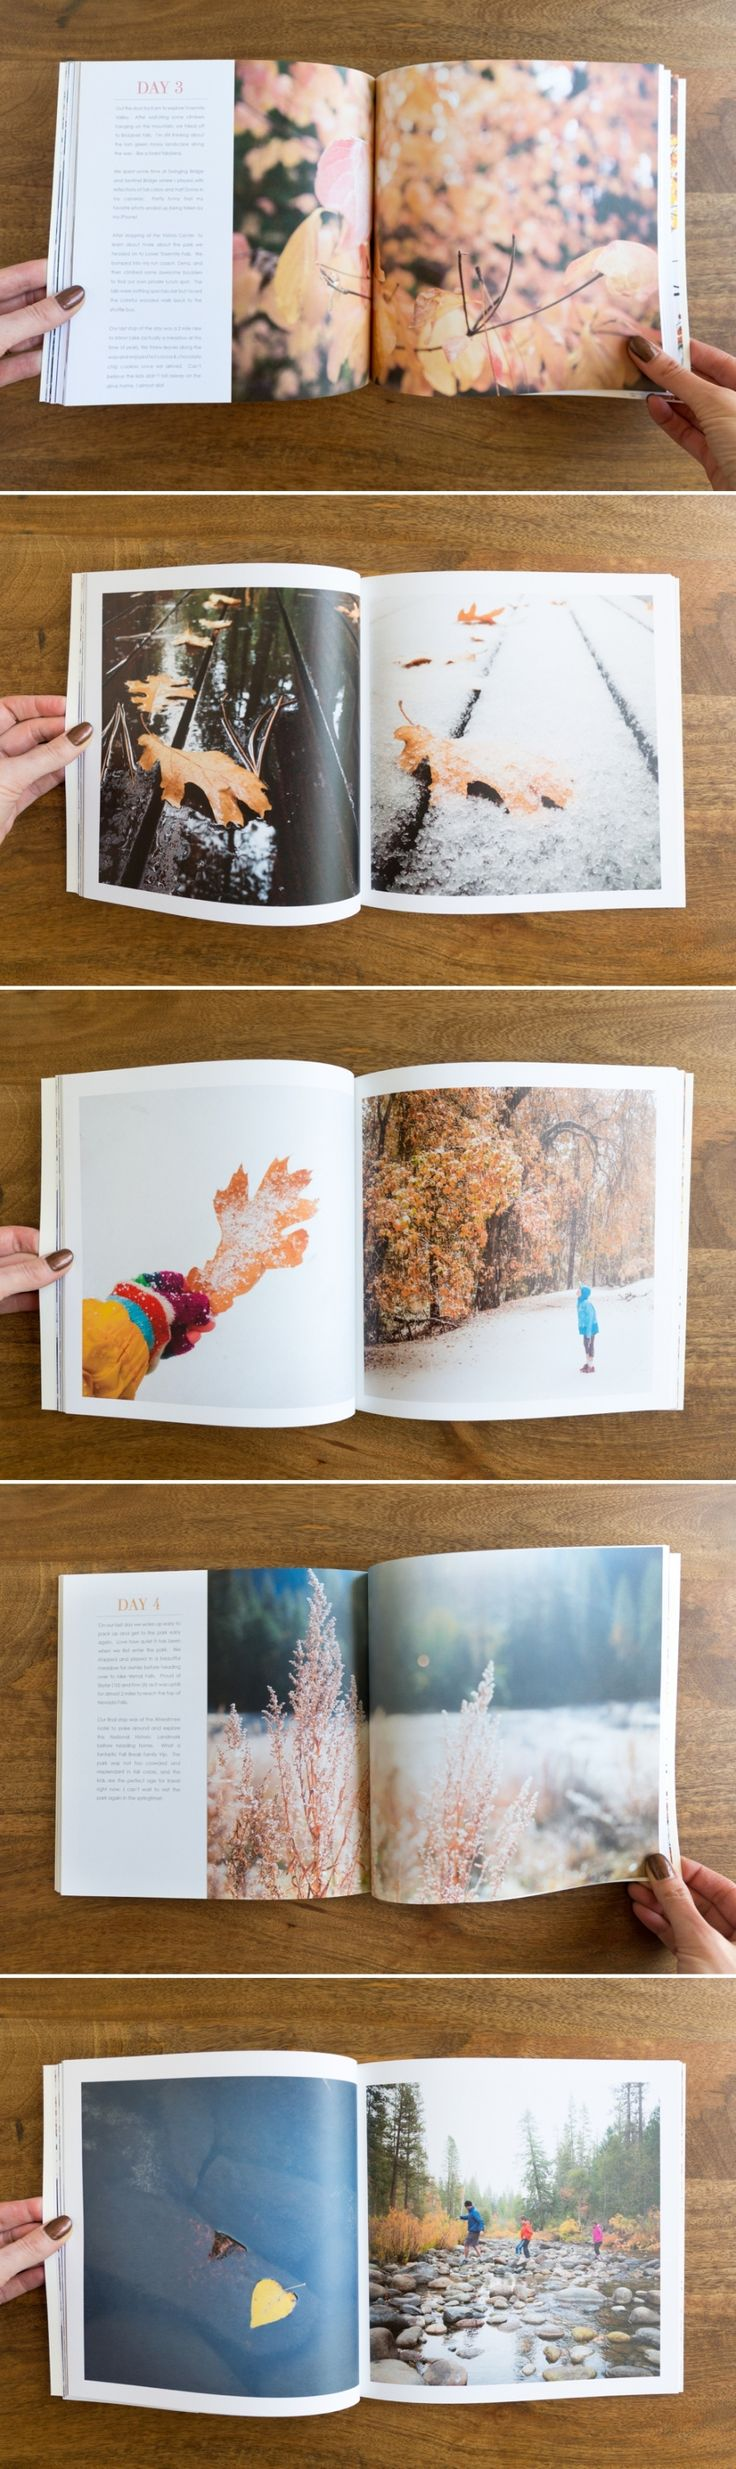 big images displayed on each page  Yosemite Photo Book | suzanneobrienstudio.com